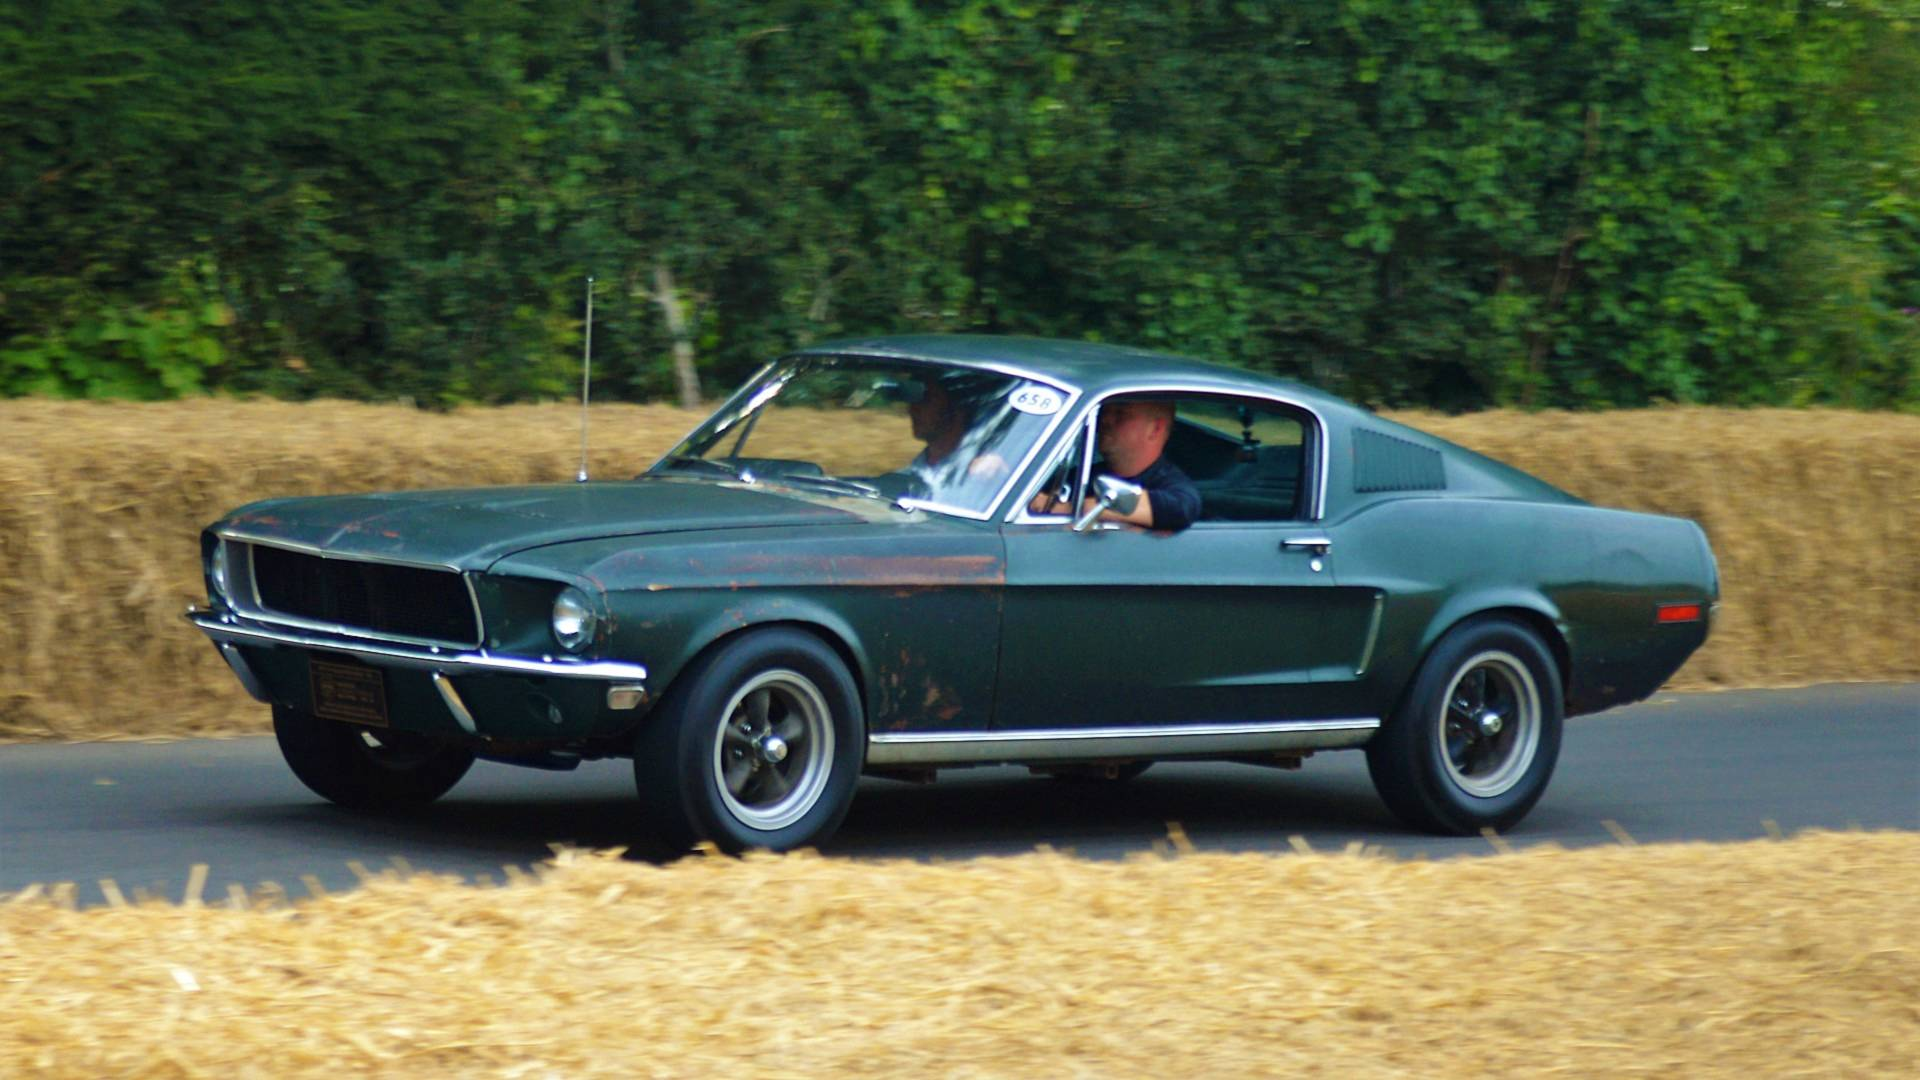 Original Bullitt Mustang to be sold at auction